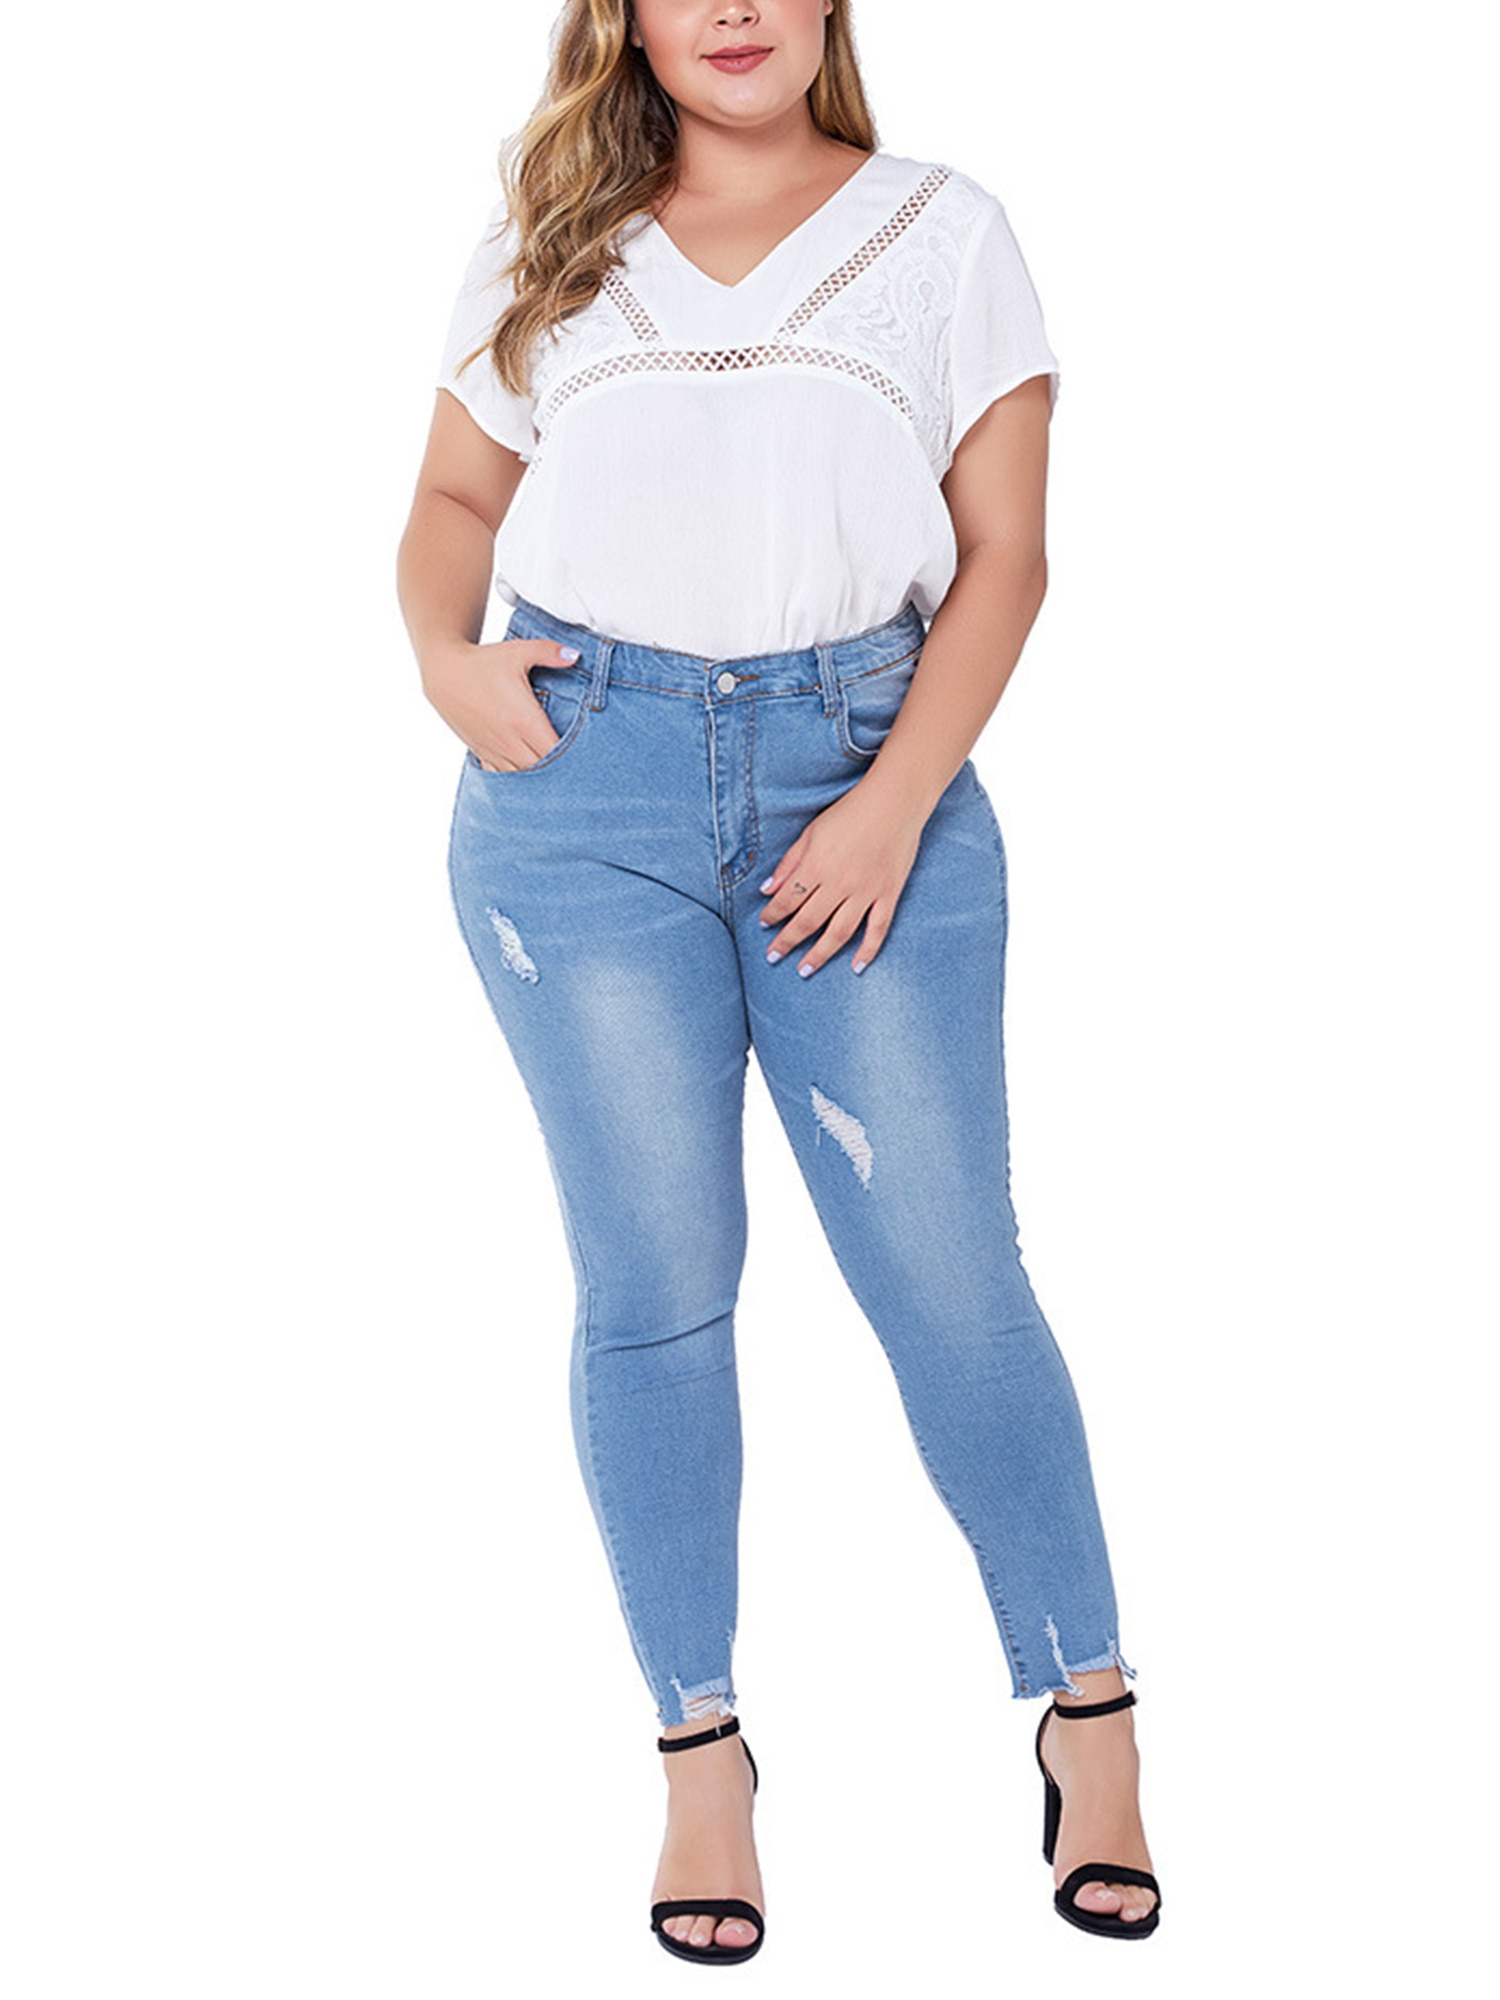 Women High Waisted Ripped Stretchy Slim Skinny Jeans Denim Jegging Pants Trouser